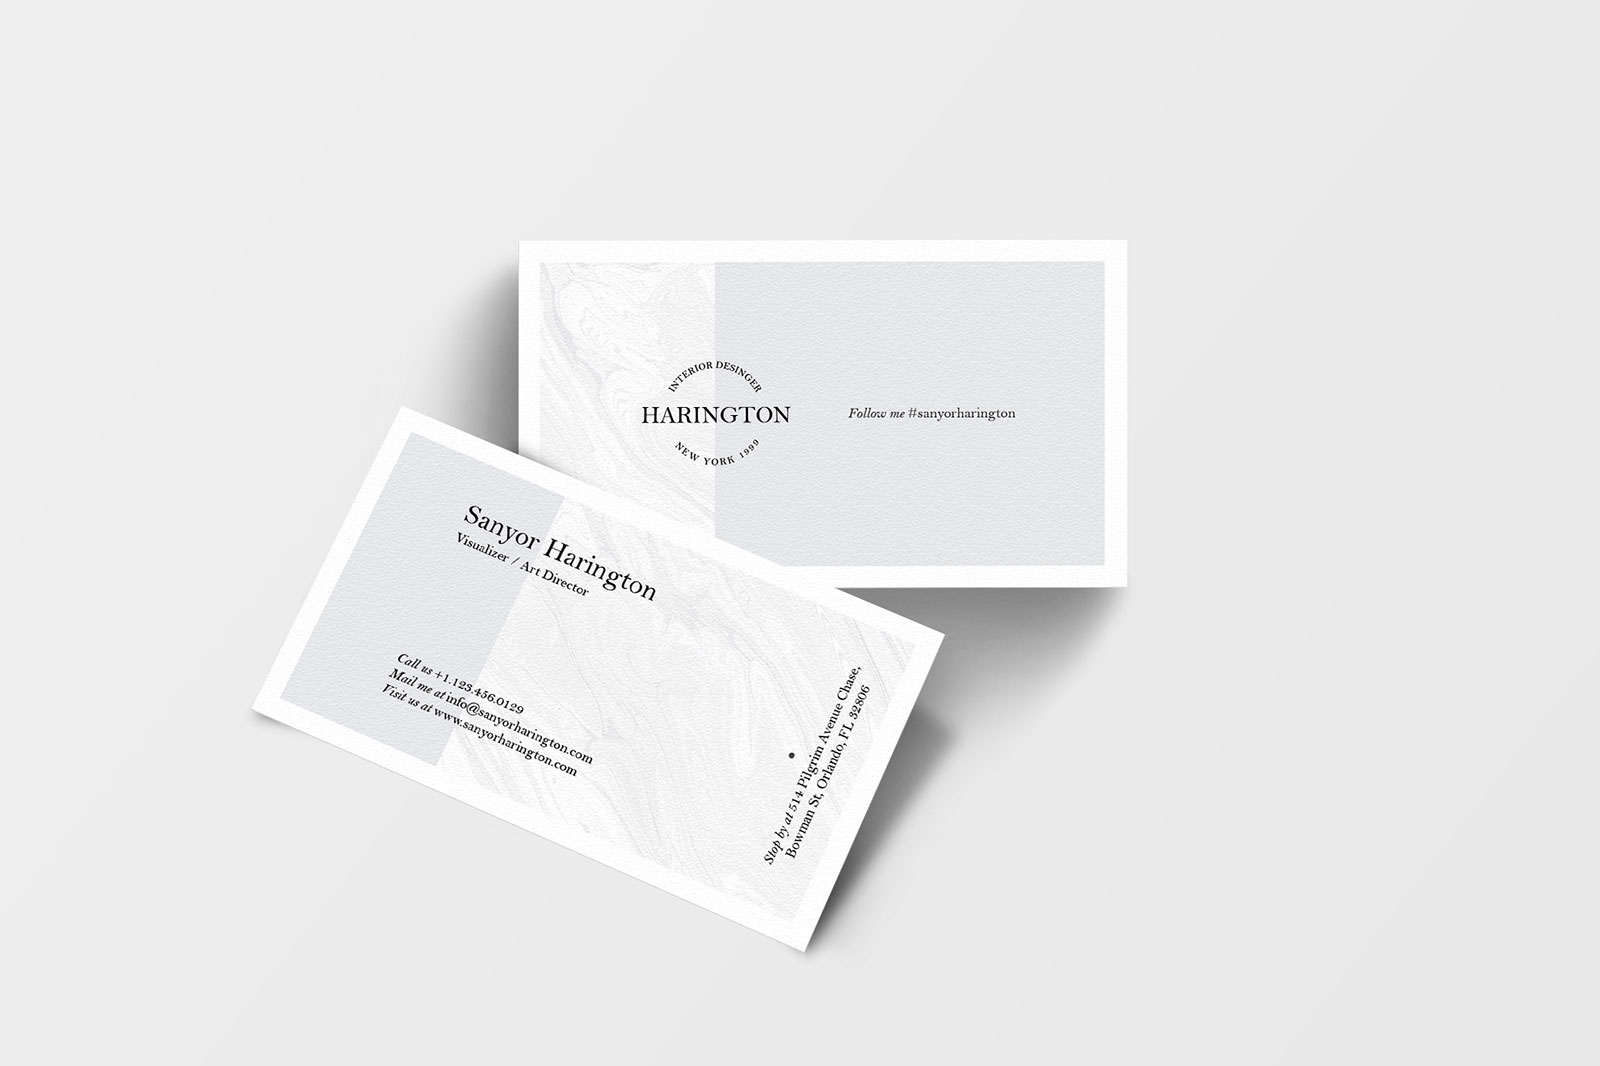 Free Business Card Mockup PSD Bundle (10 PSD Templates)